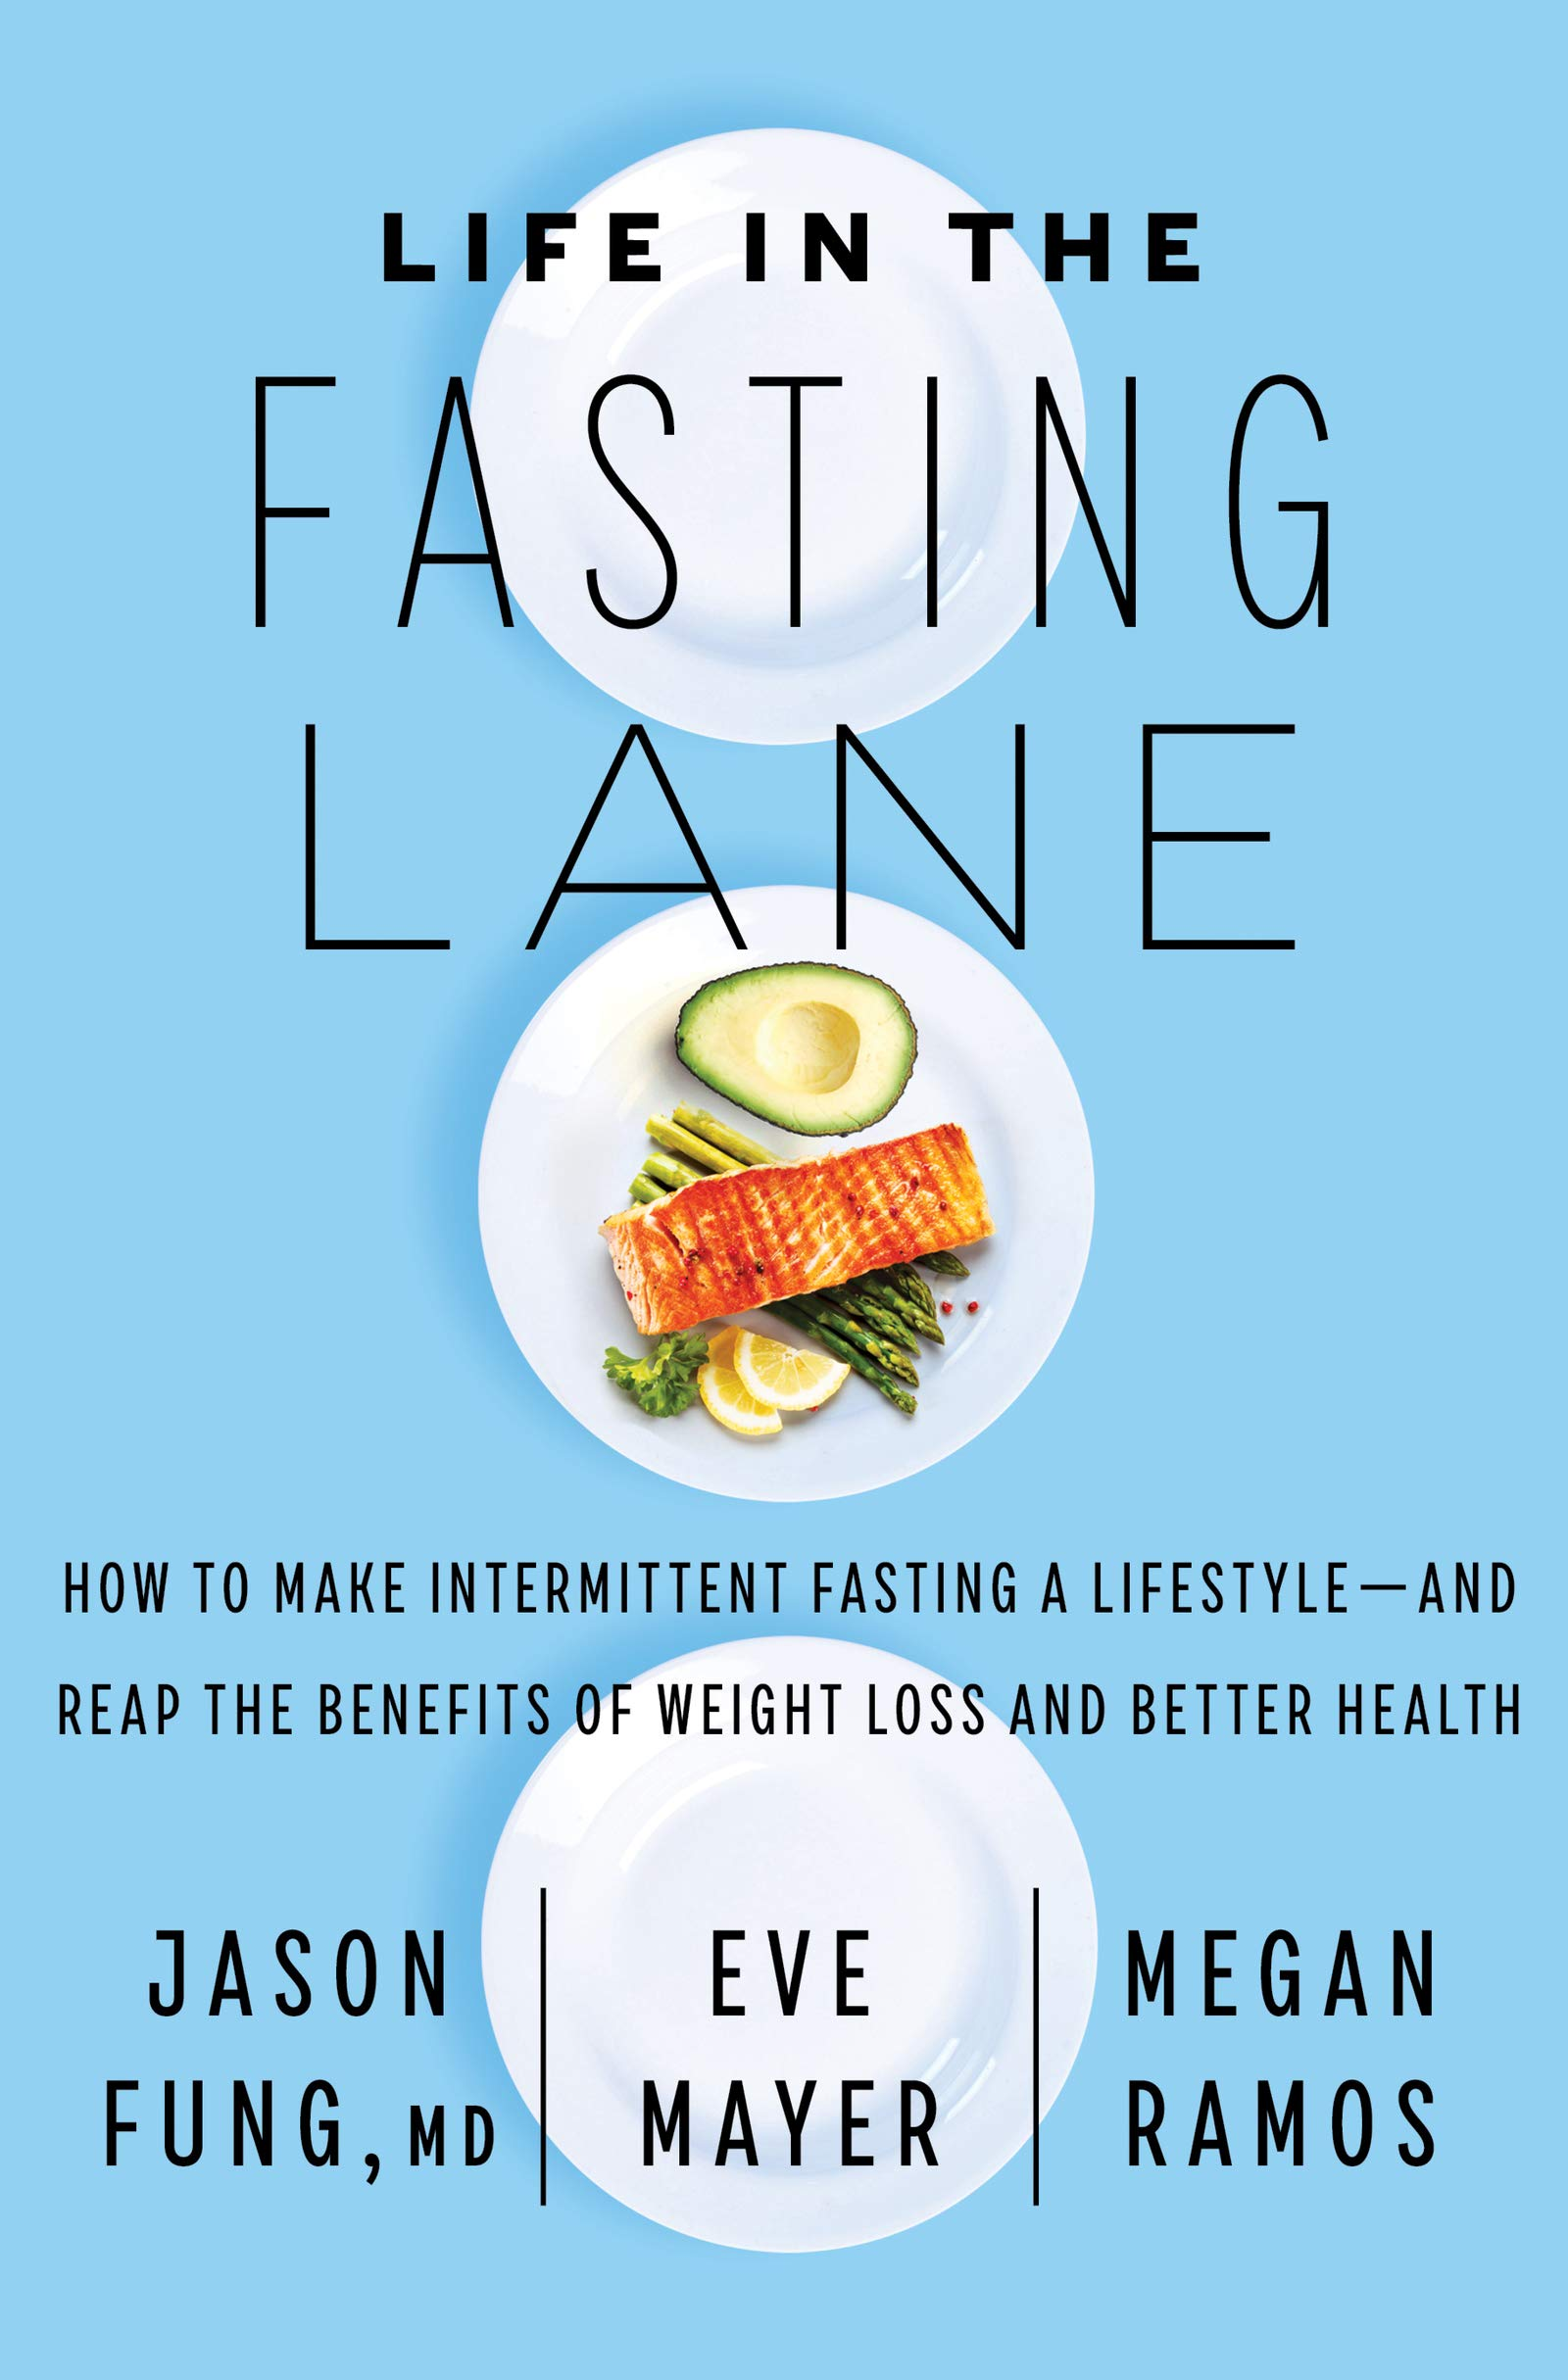 Life In The Fasting Lane How To Make Intermittent Fasting A Lifestyle And Reap The Benefits Of Weight Loss And Better Health Fung Dr Jason Mayer Eve Ramos Megan 9780062969446 Amazon Com Books